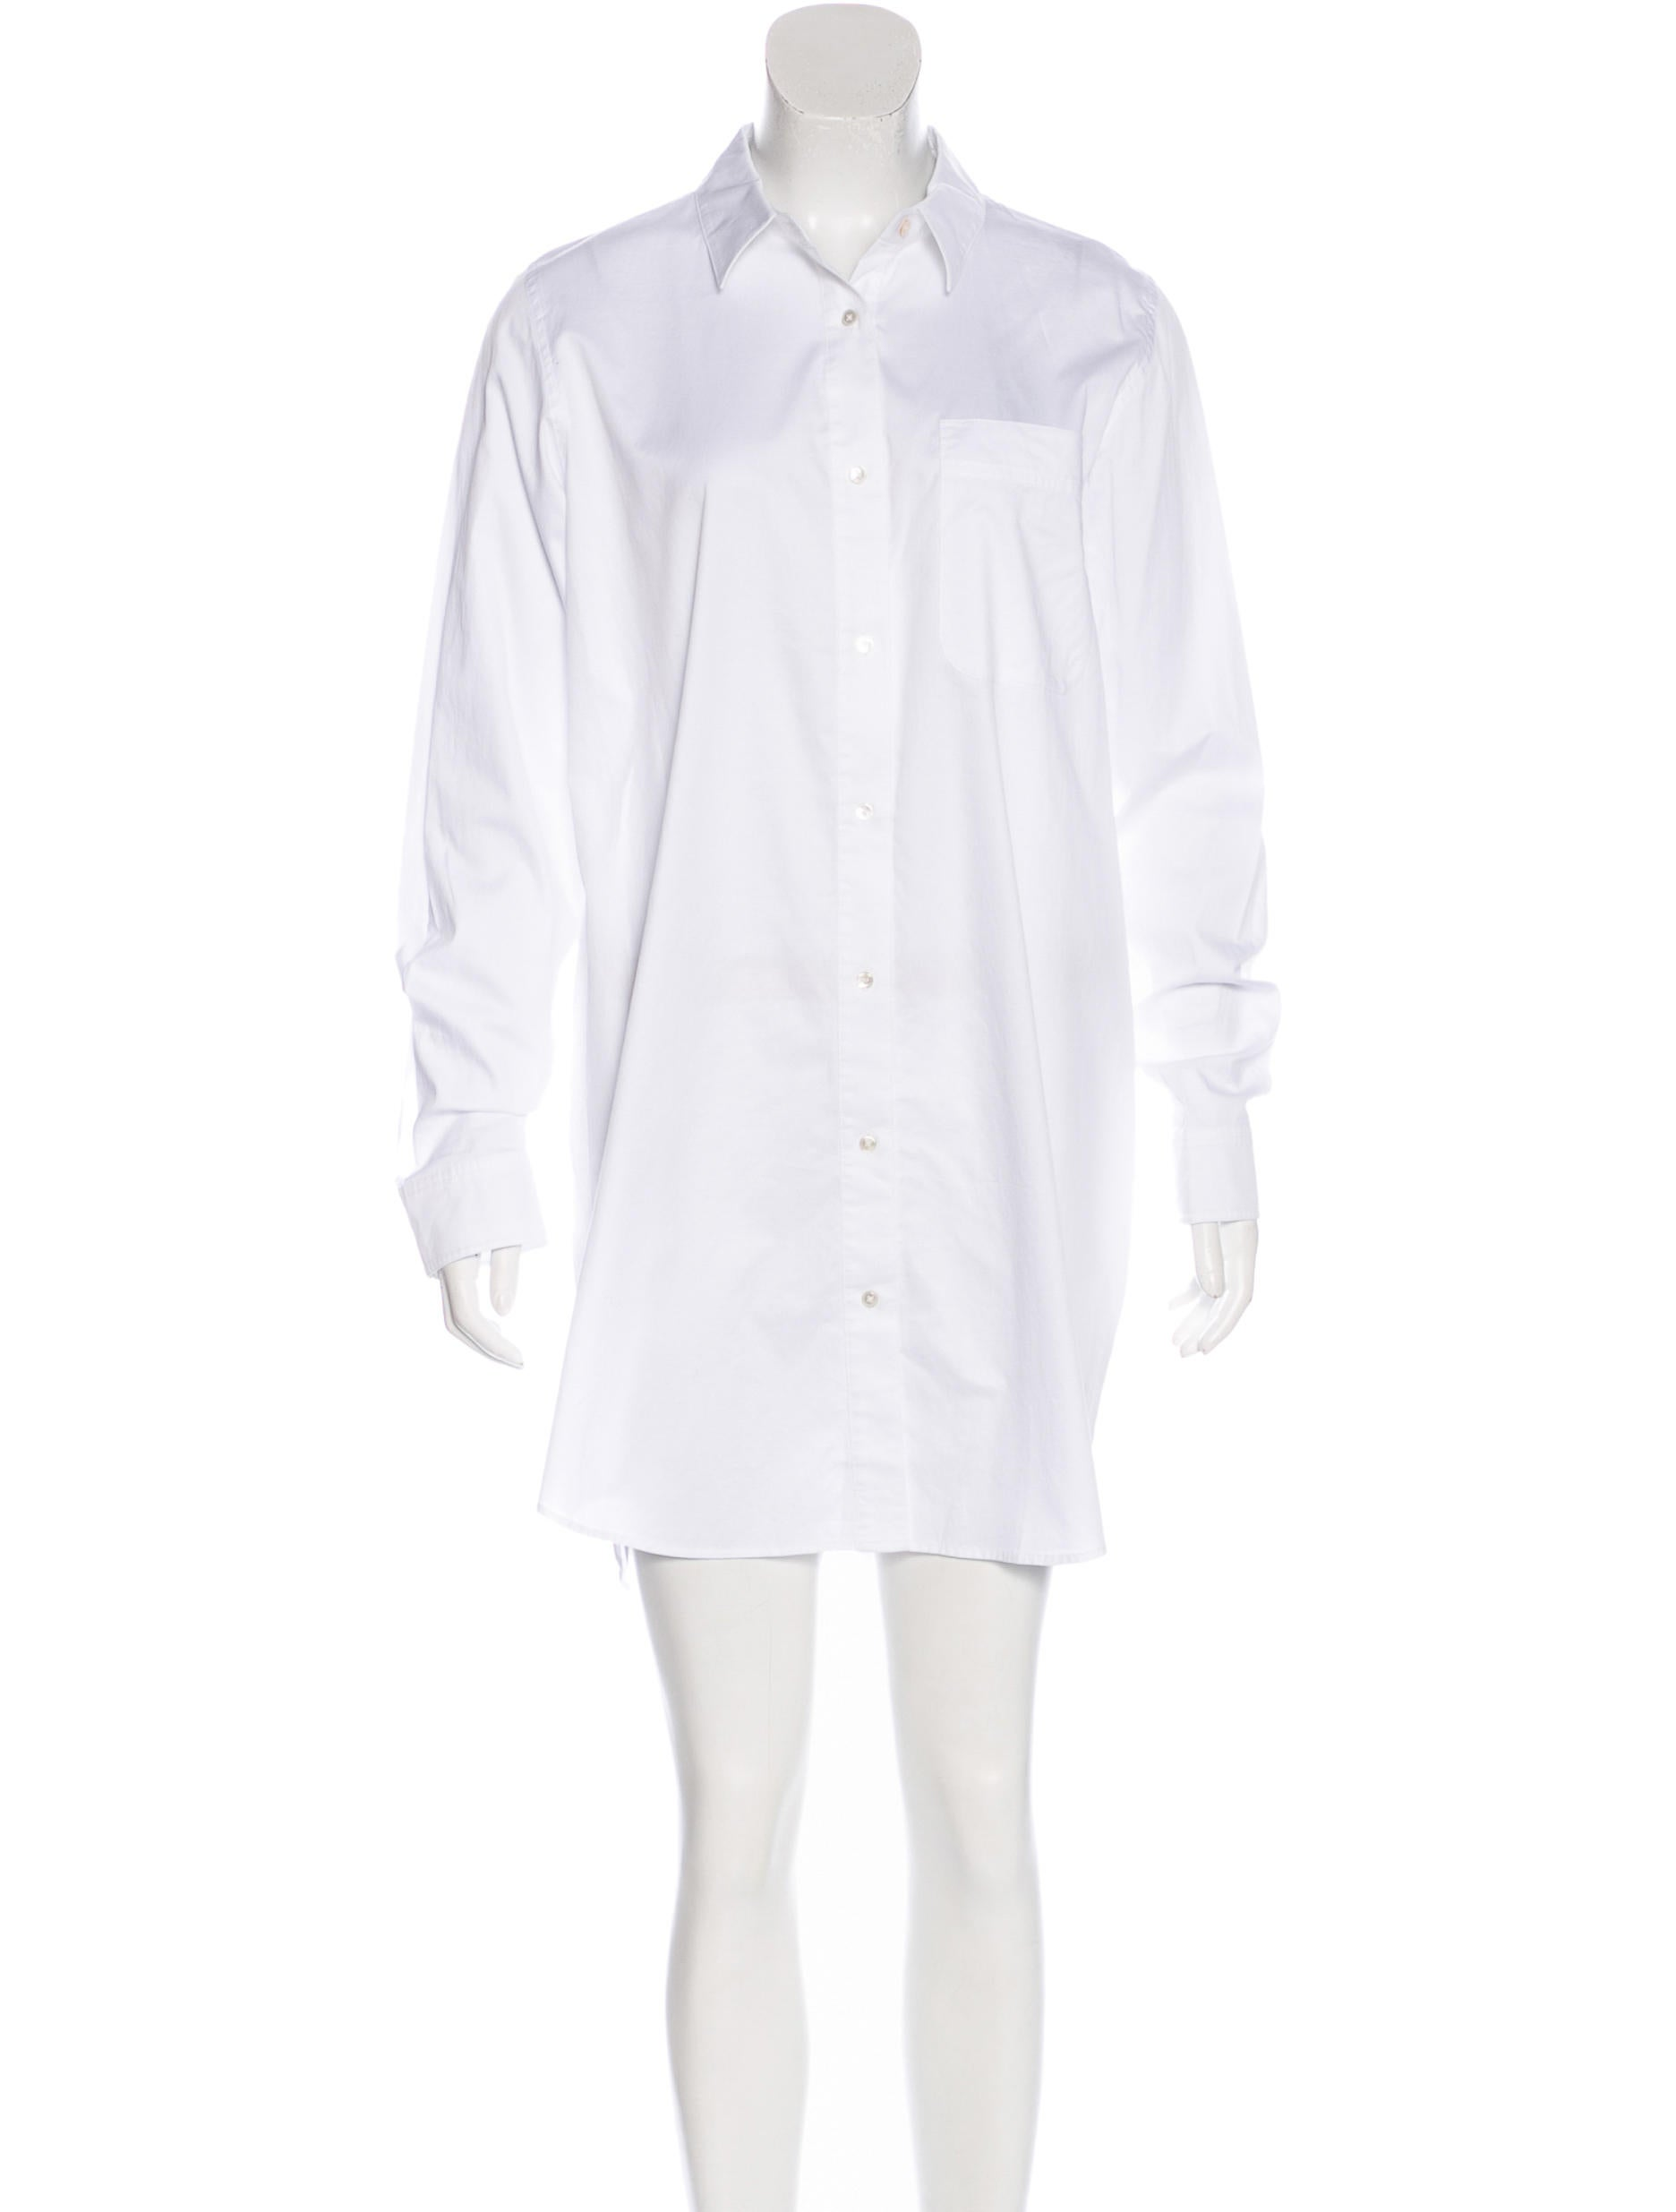 Shop at Etsy to find unique and handmade knee length shirt related items directly from our sellers. Close. Yellow linen shirt dress - linen dress, casual dress, summer dress, knee-length, summer shirt dress, women's linen clothes YourLinenWish. 5 out of 5 stars (3) $ Only 3 left Favorite Add to See similar items.